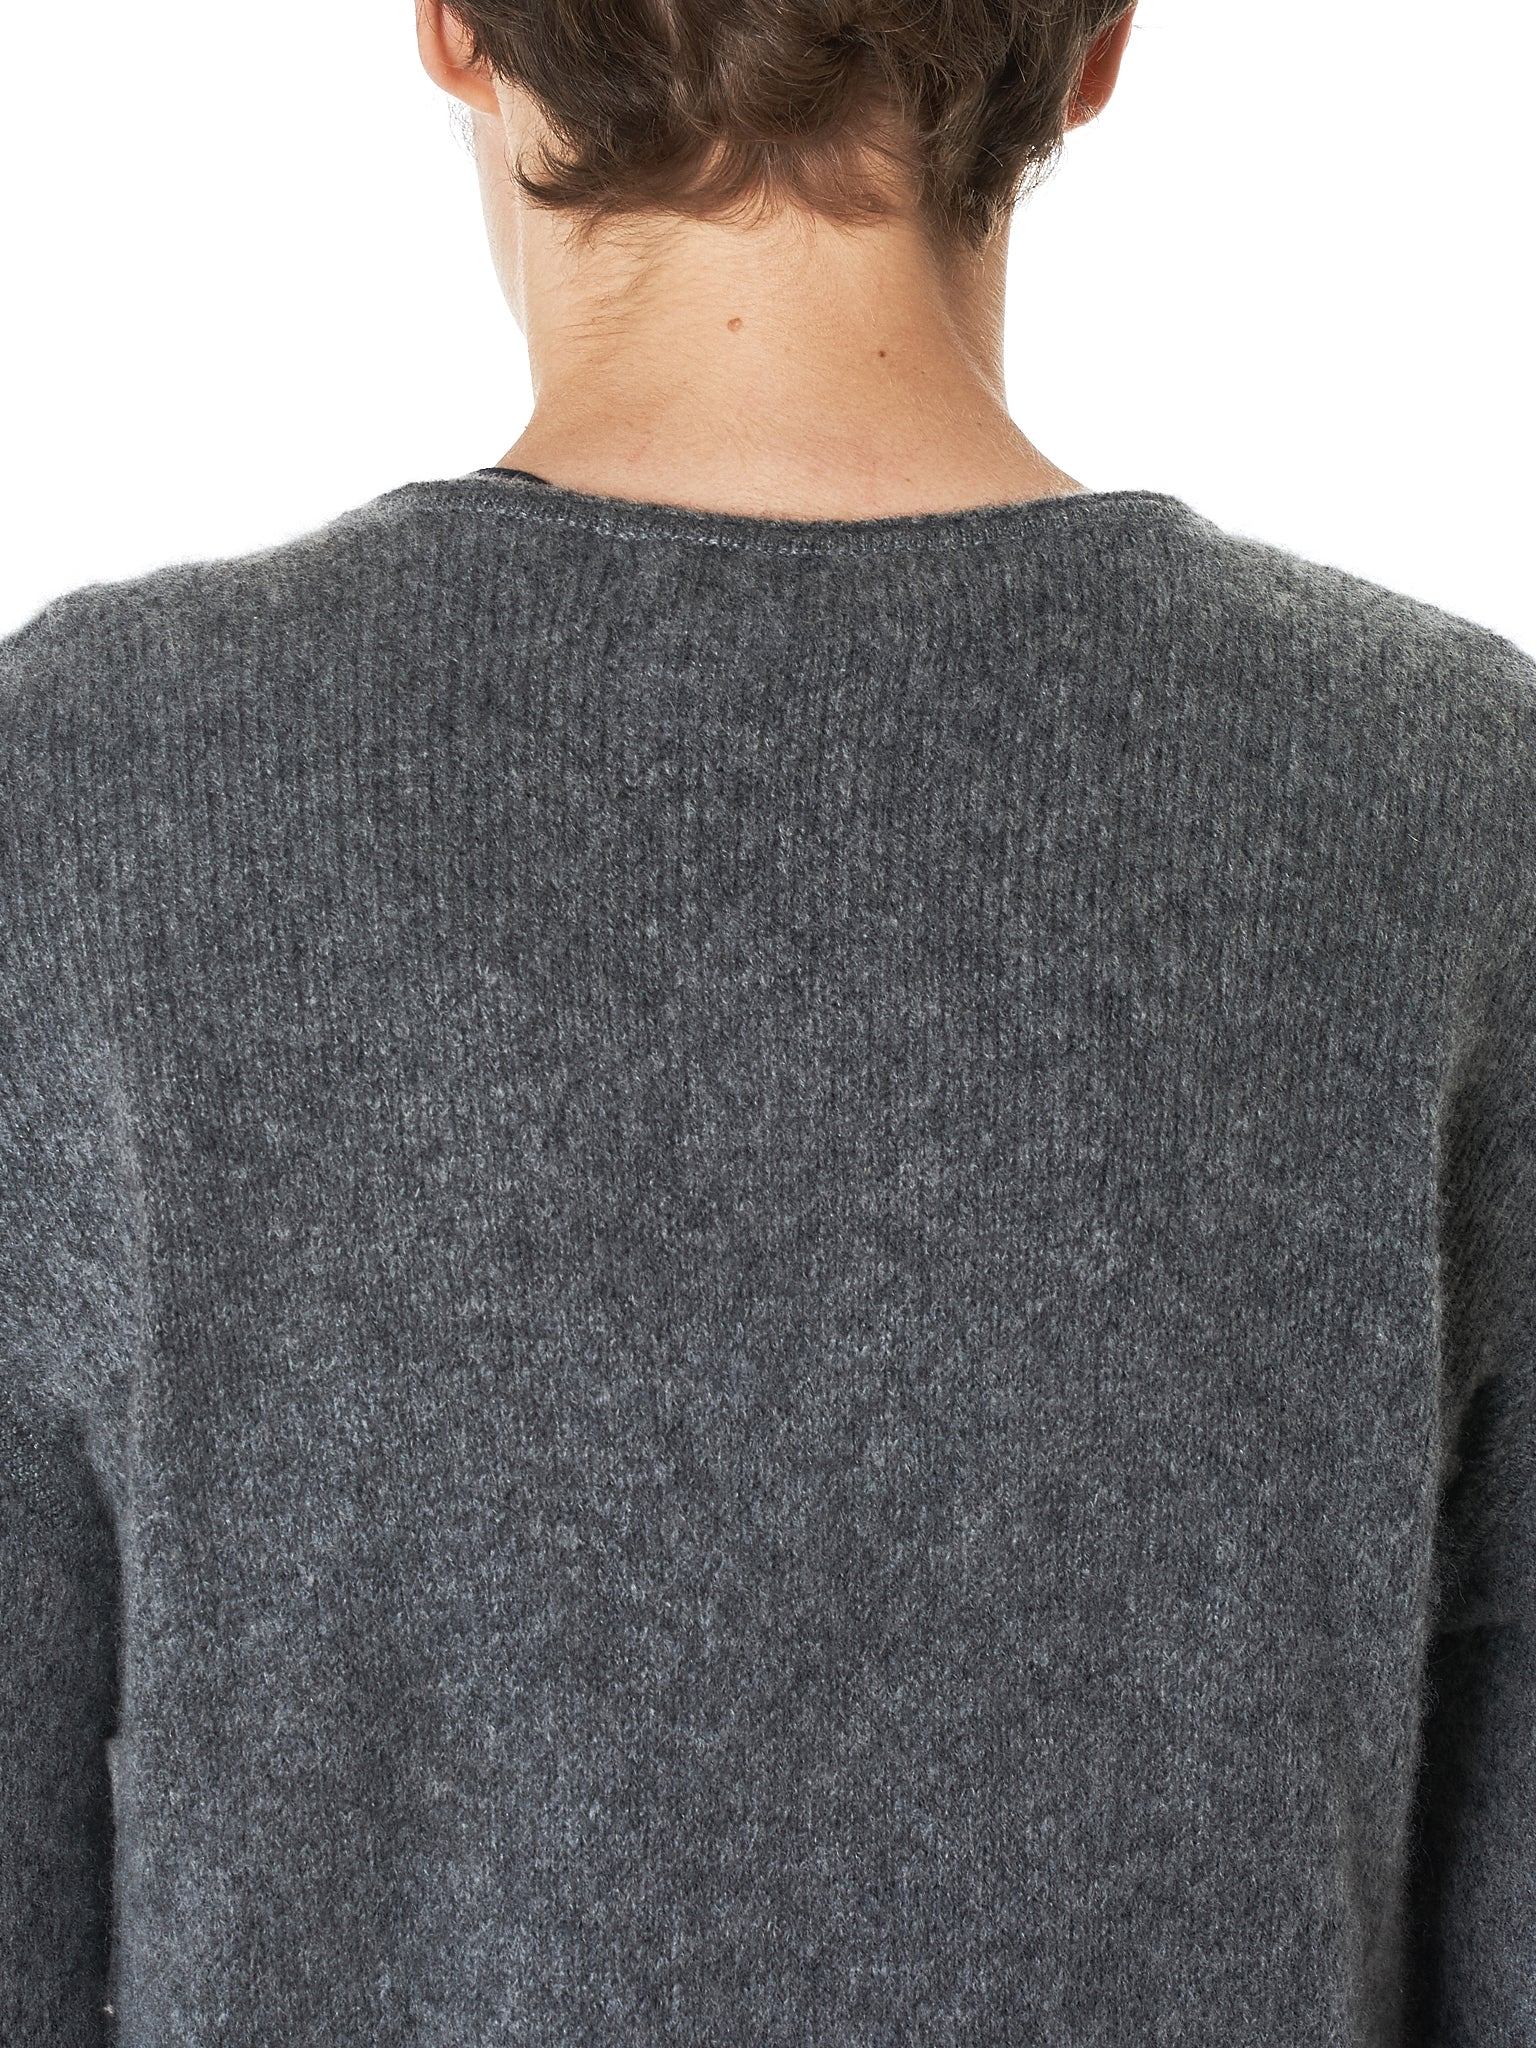 Denis Colomb Sweater - Hlorenzo Back Detail